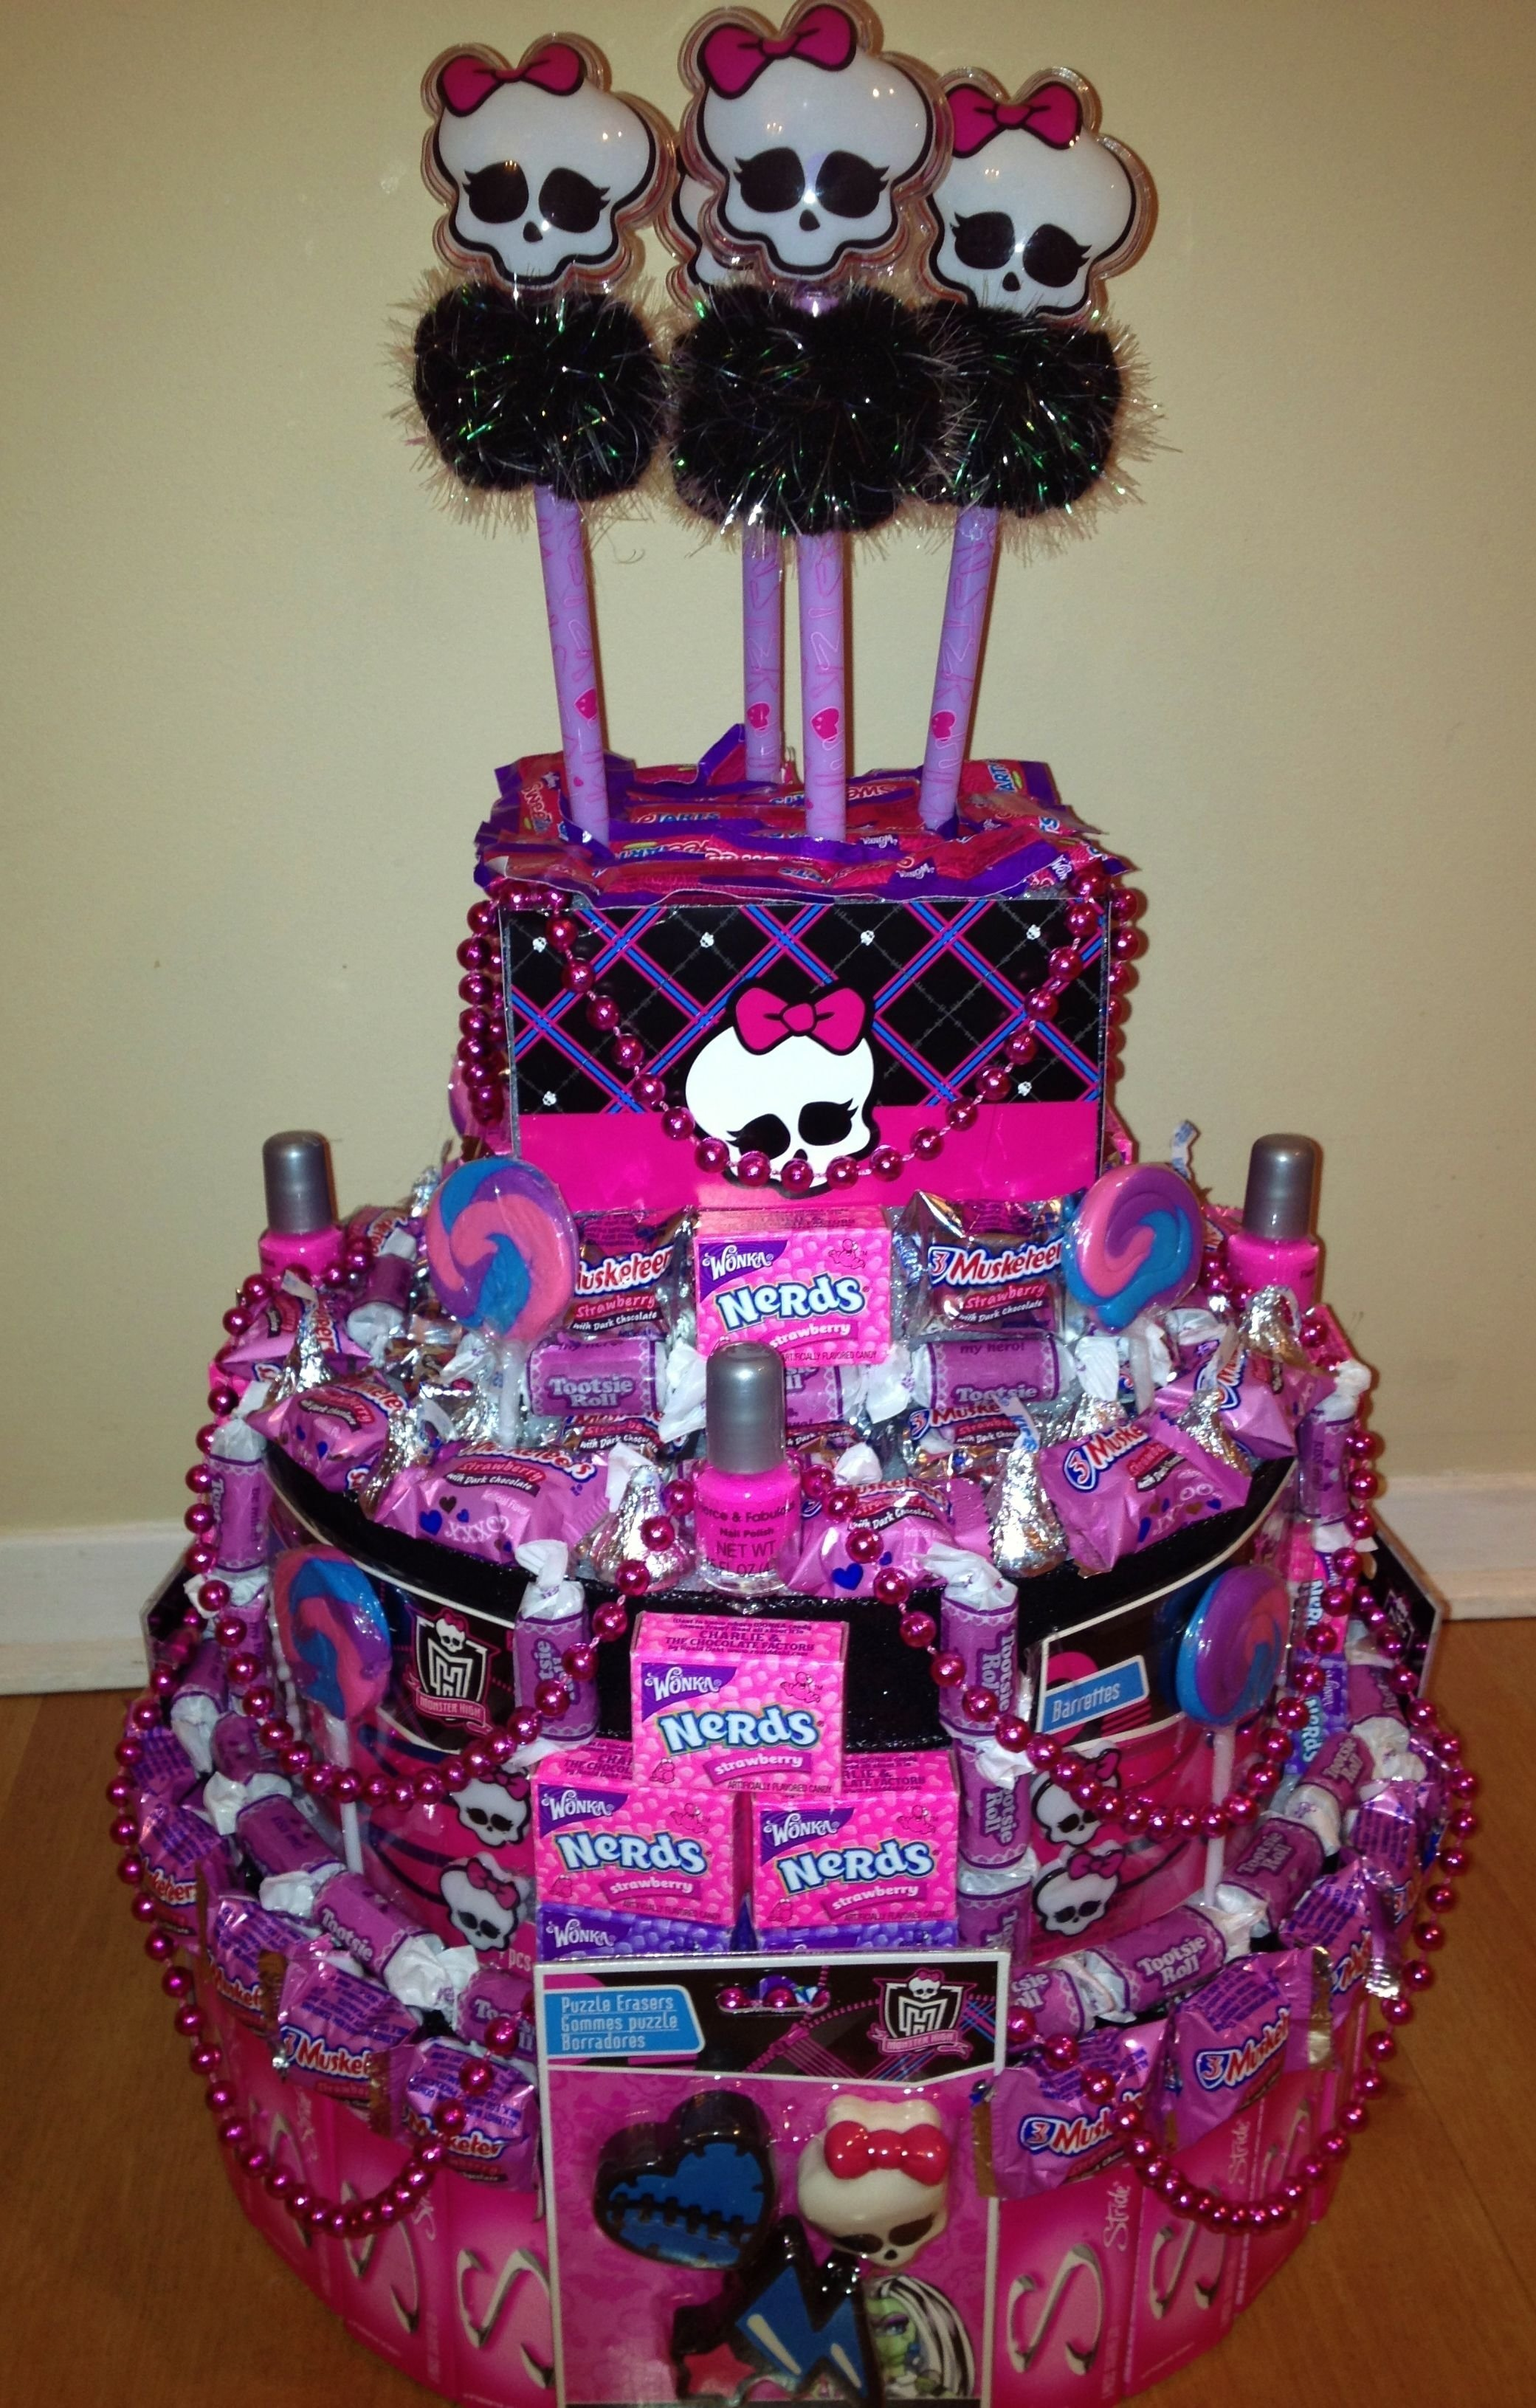 10 Lovely Monster High Party Food Ideas monster high party monster high party favors candy centerpieces 2 2020